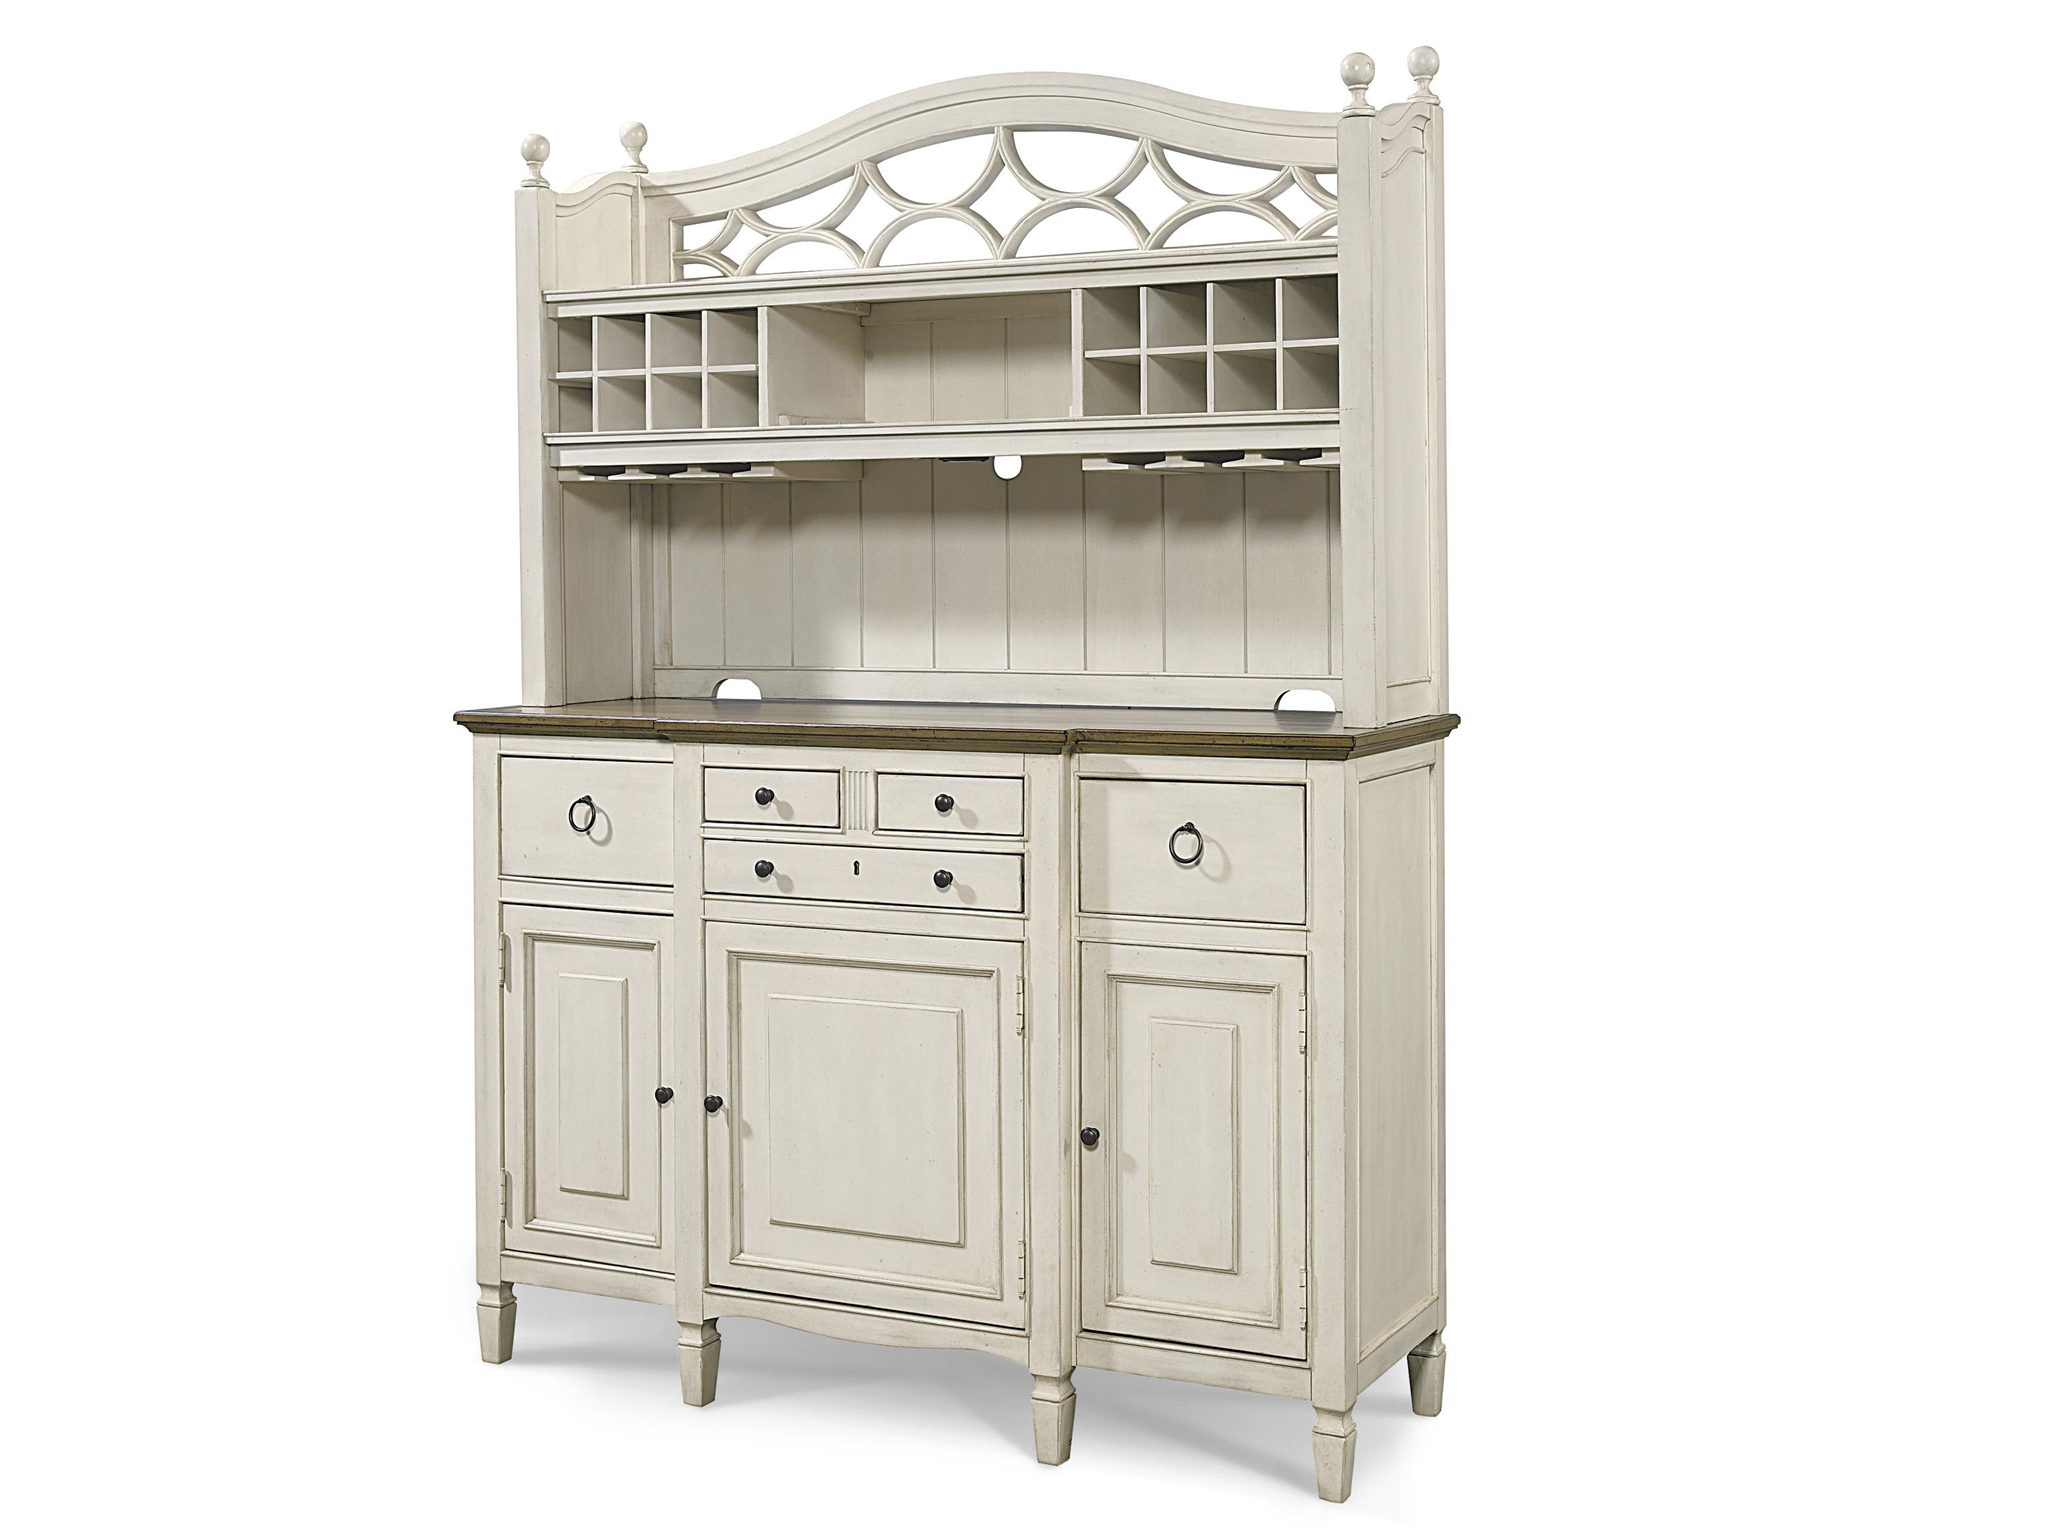 Universal furniture summer hill summer hill serving buffet with bar hutch Home furniture from china